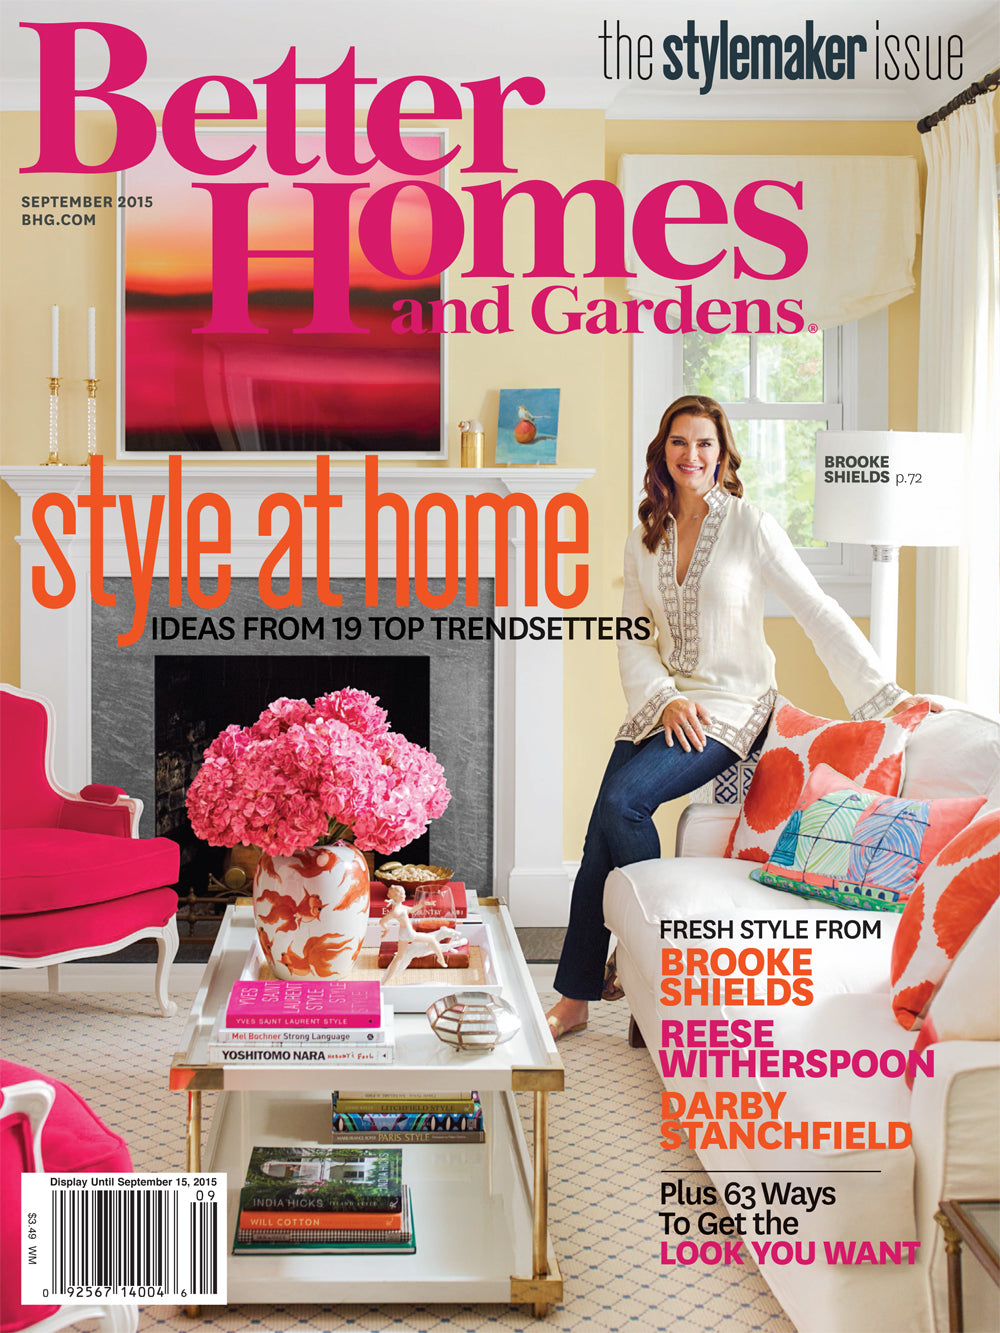 Cover image of Better Homes and Gardens magazine, September 2015